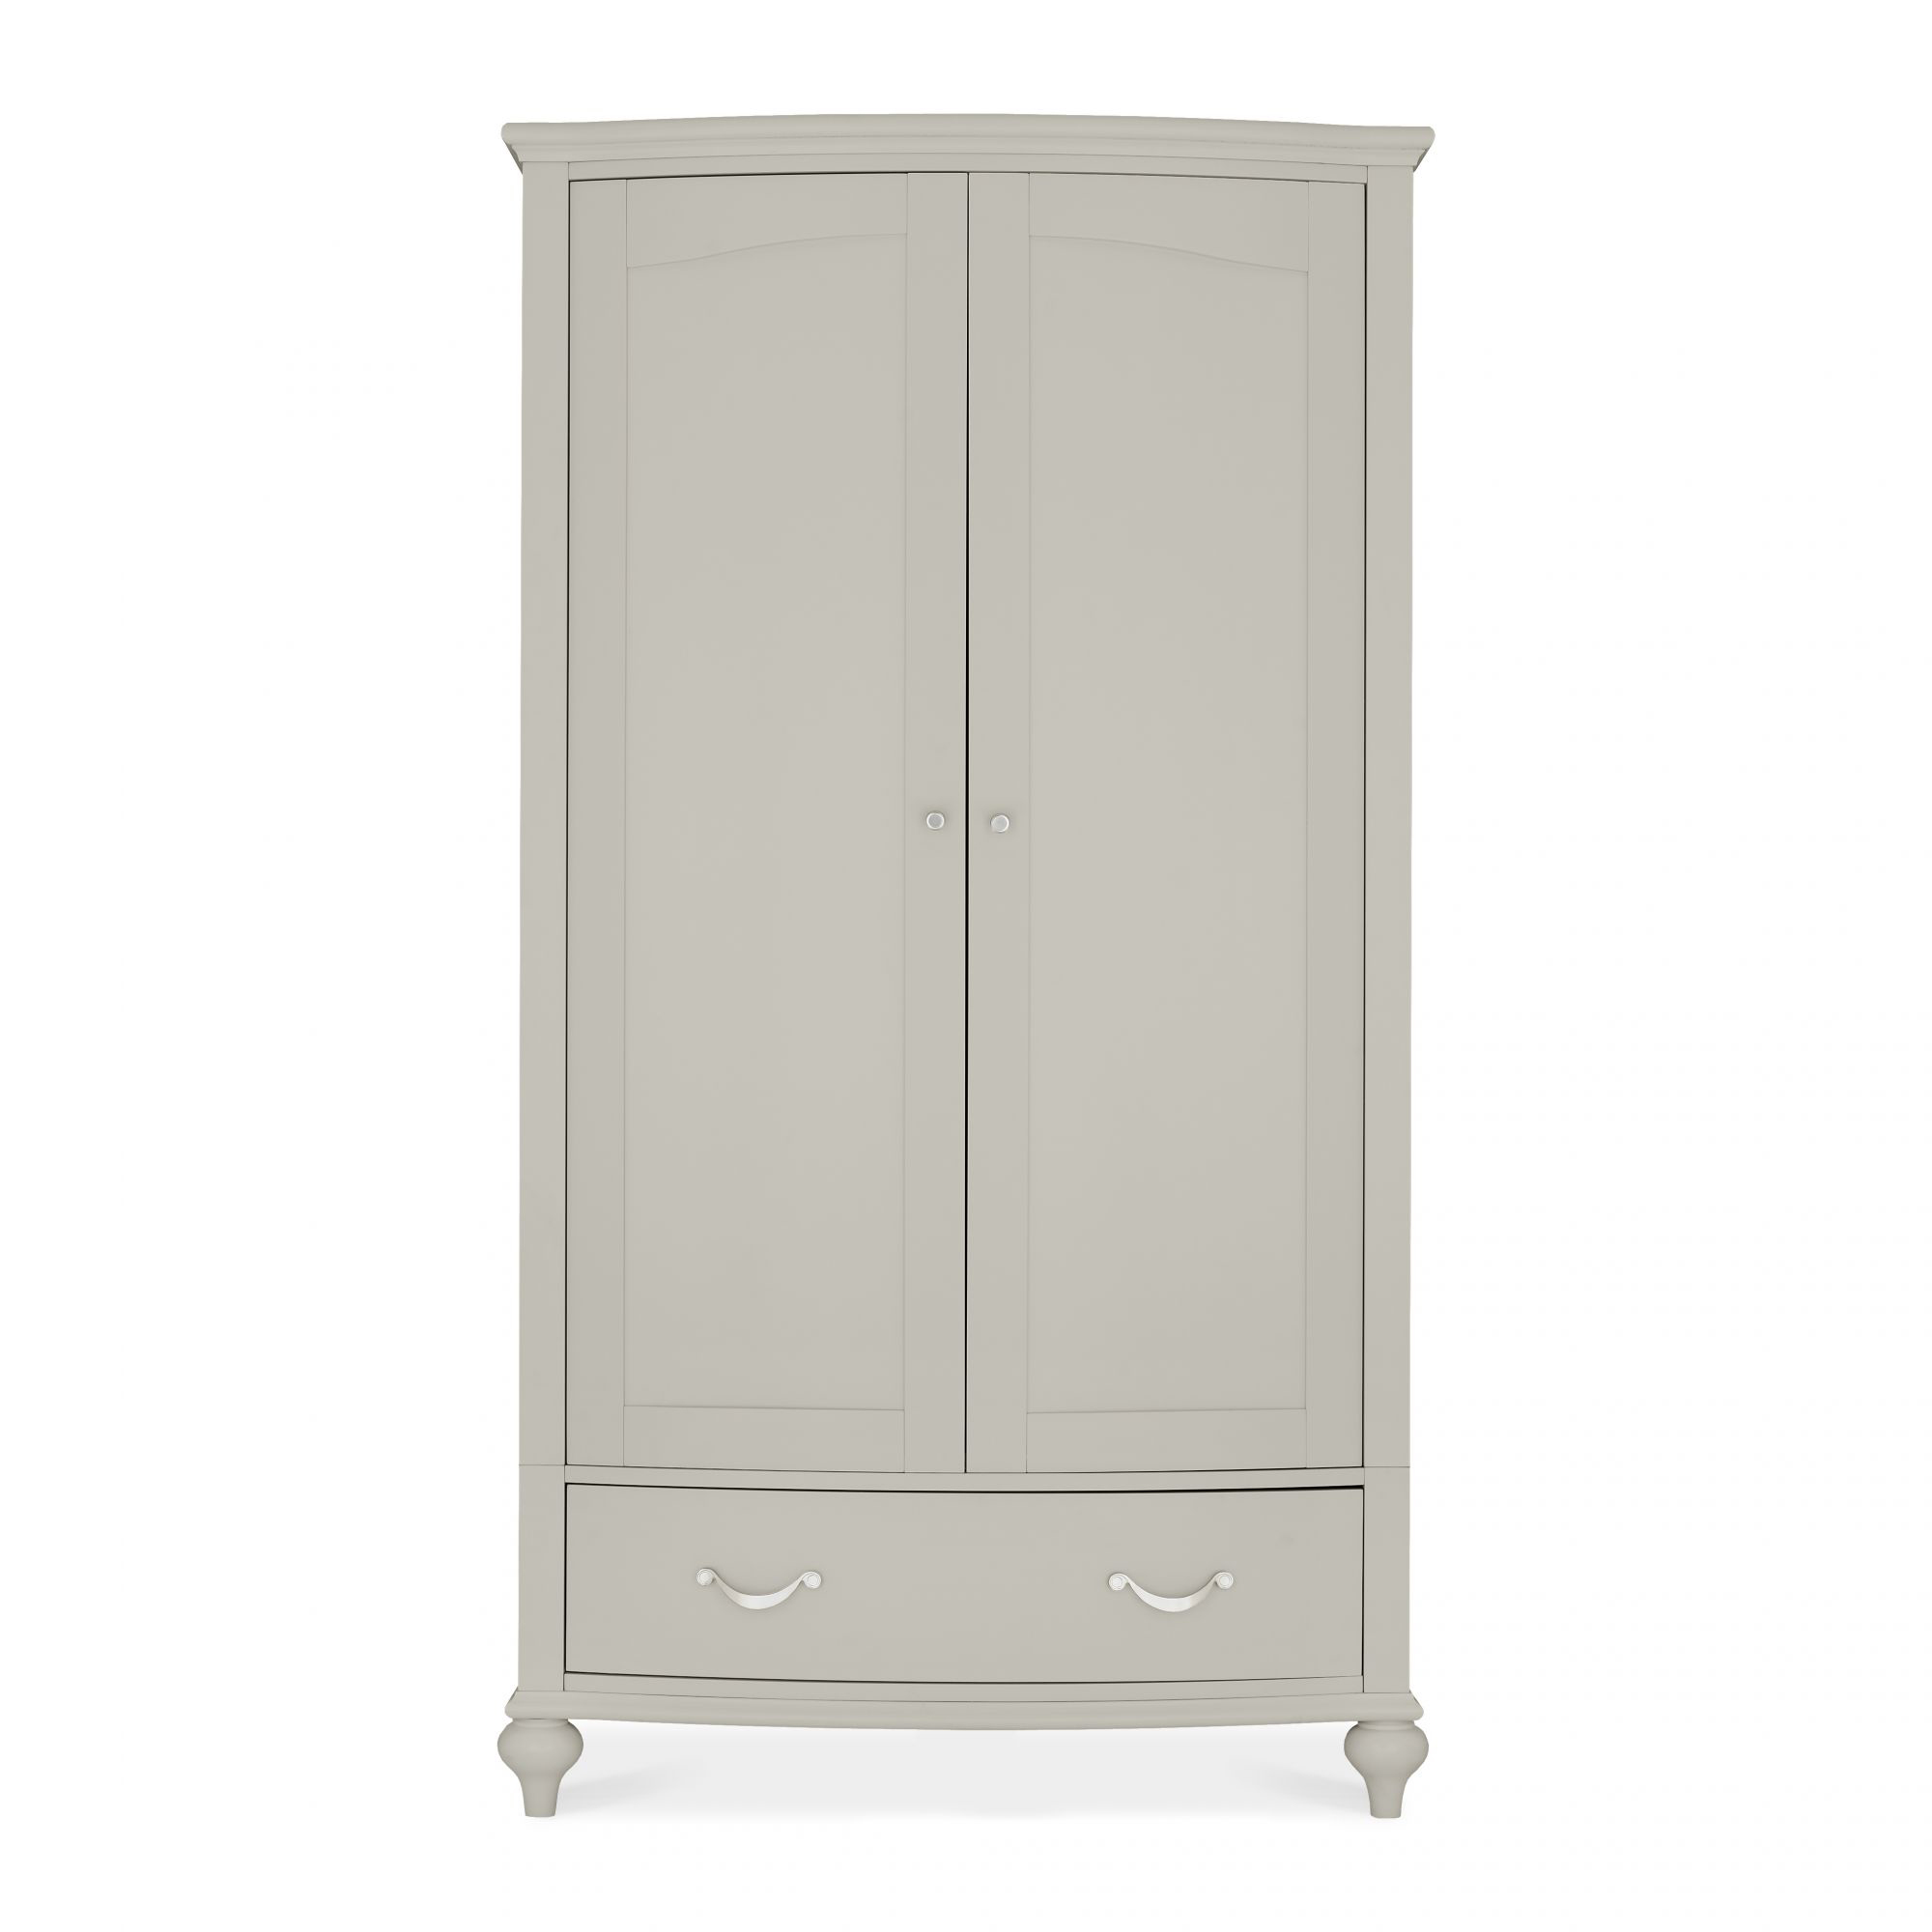 furniture ecntoulouse itm toulouse coast east door grey drawer wardrobe in nursery french